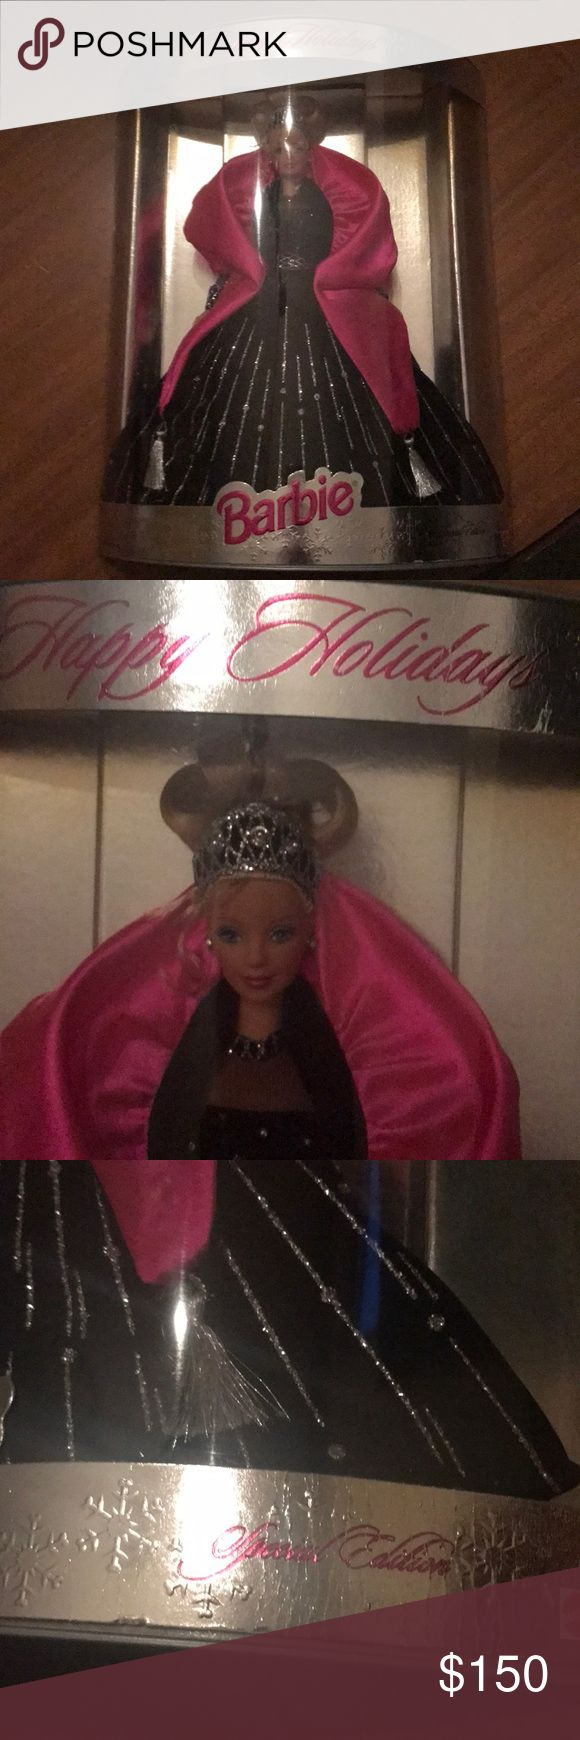 Happy holidays Barbie special edition NEW!! Great Christmas gift! Two Barbies new in box Barbie Other